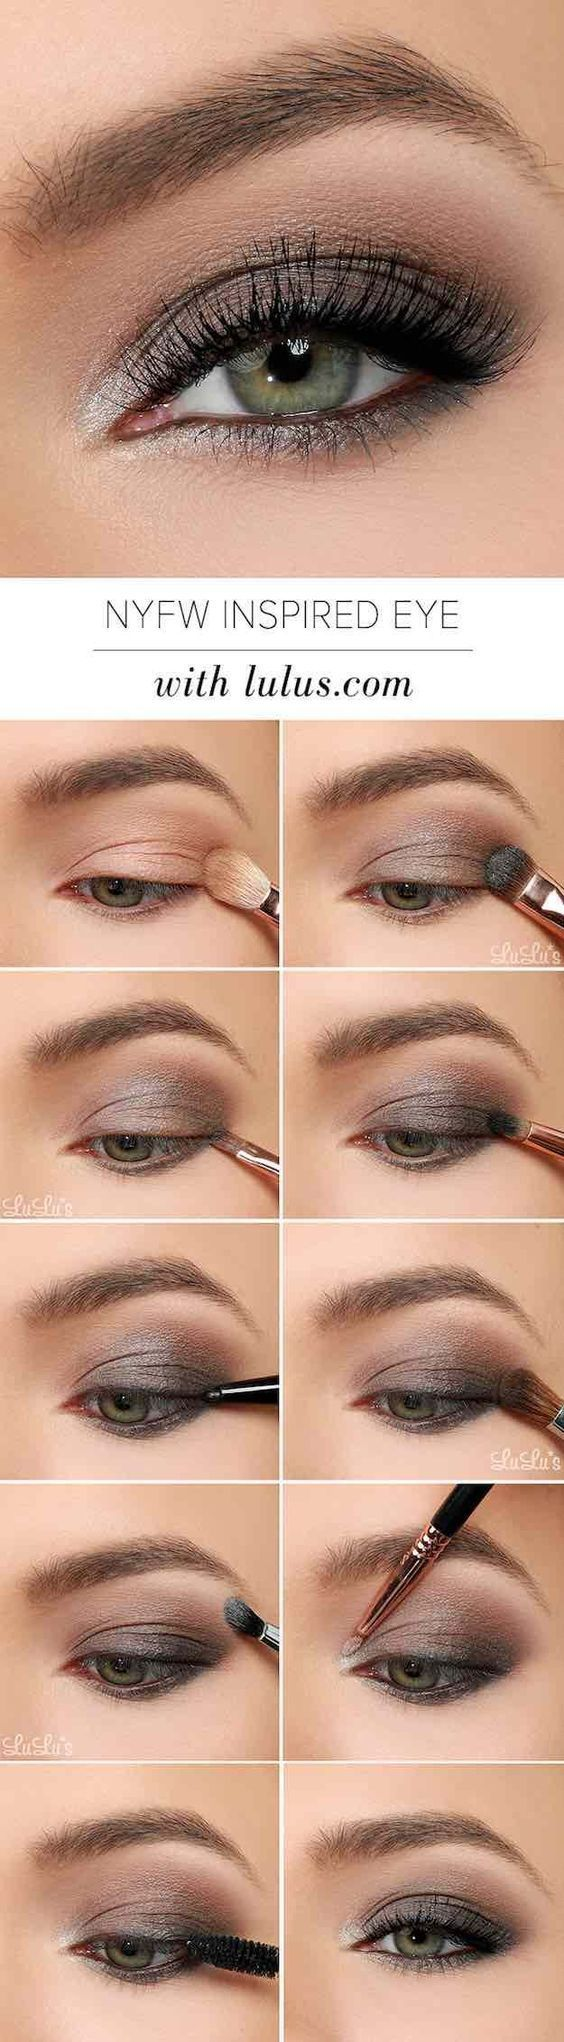 15 ideas for natural makeup for work